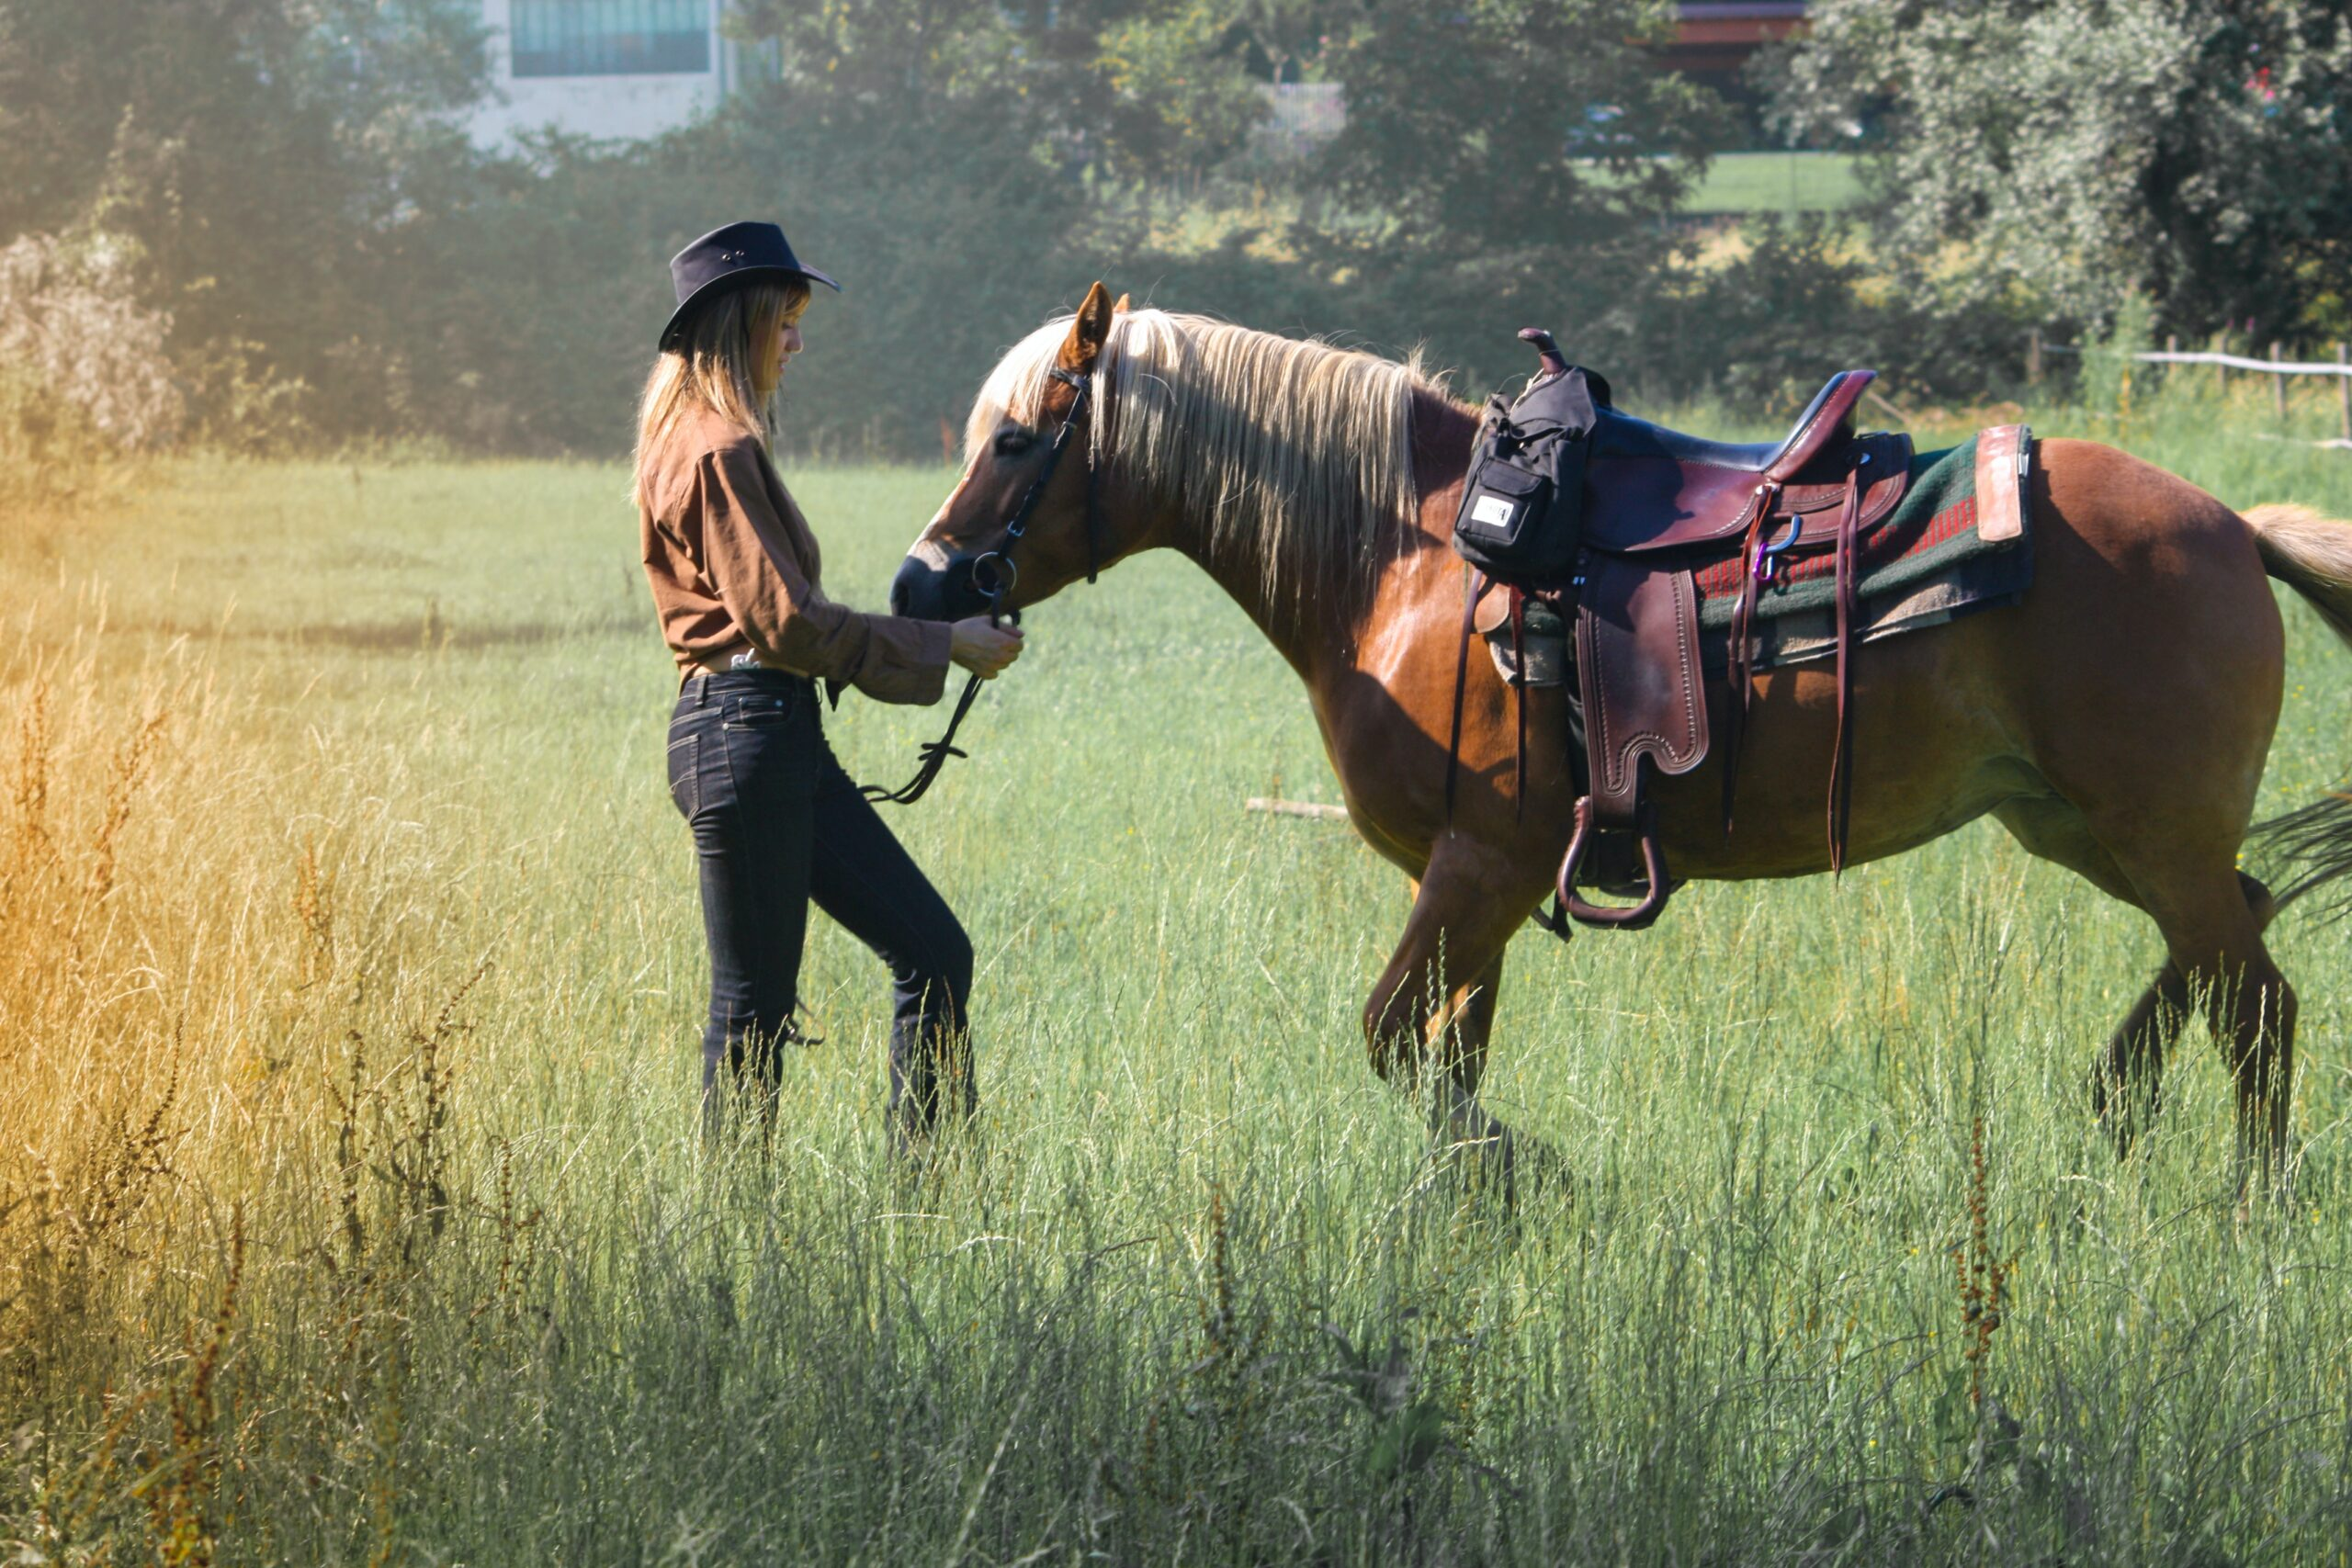 a young woman stands in a field with a saddled horse